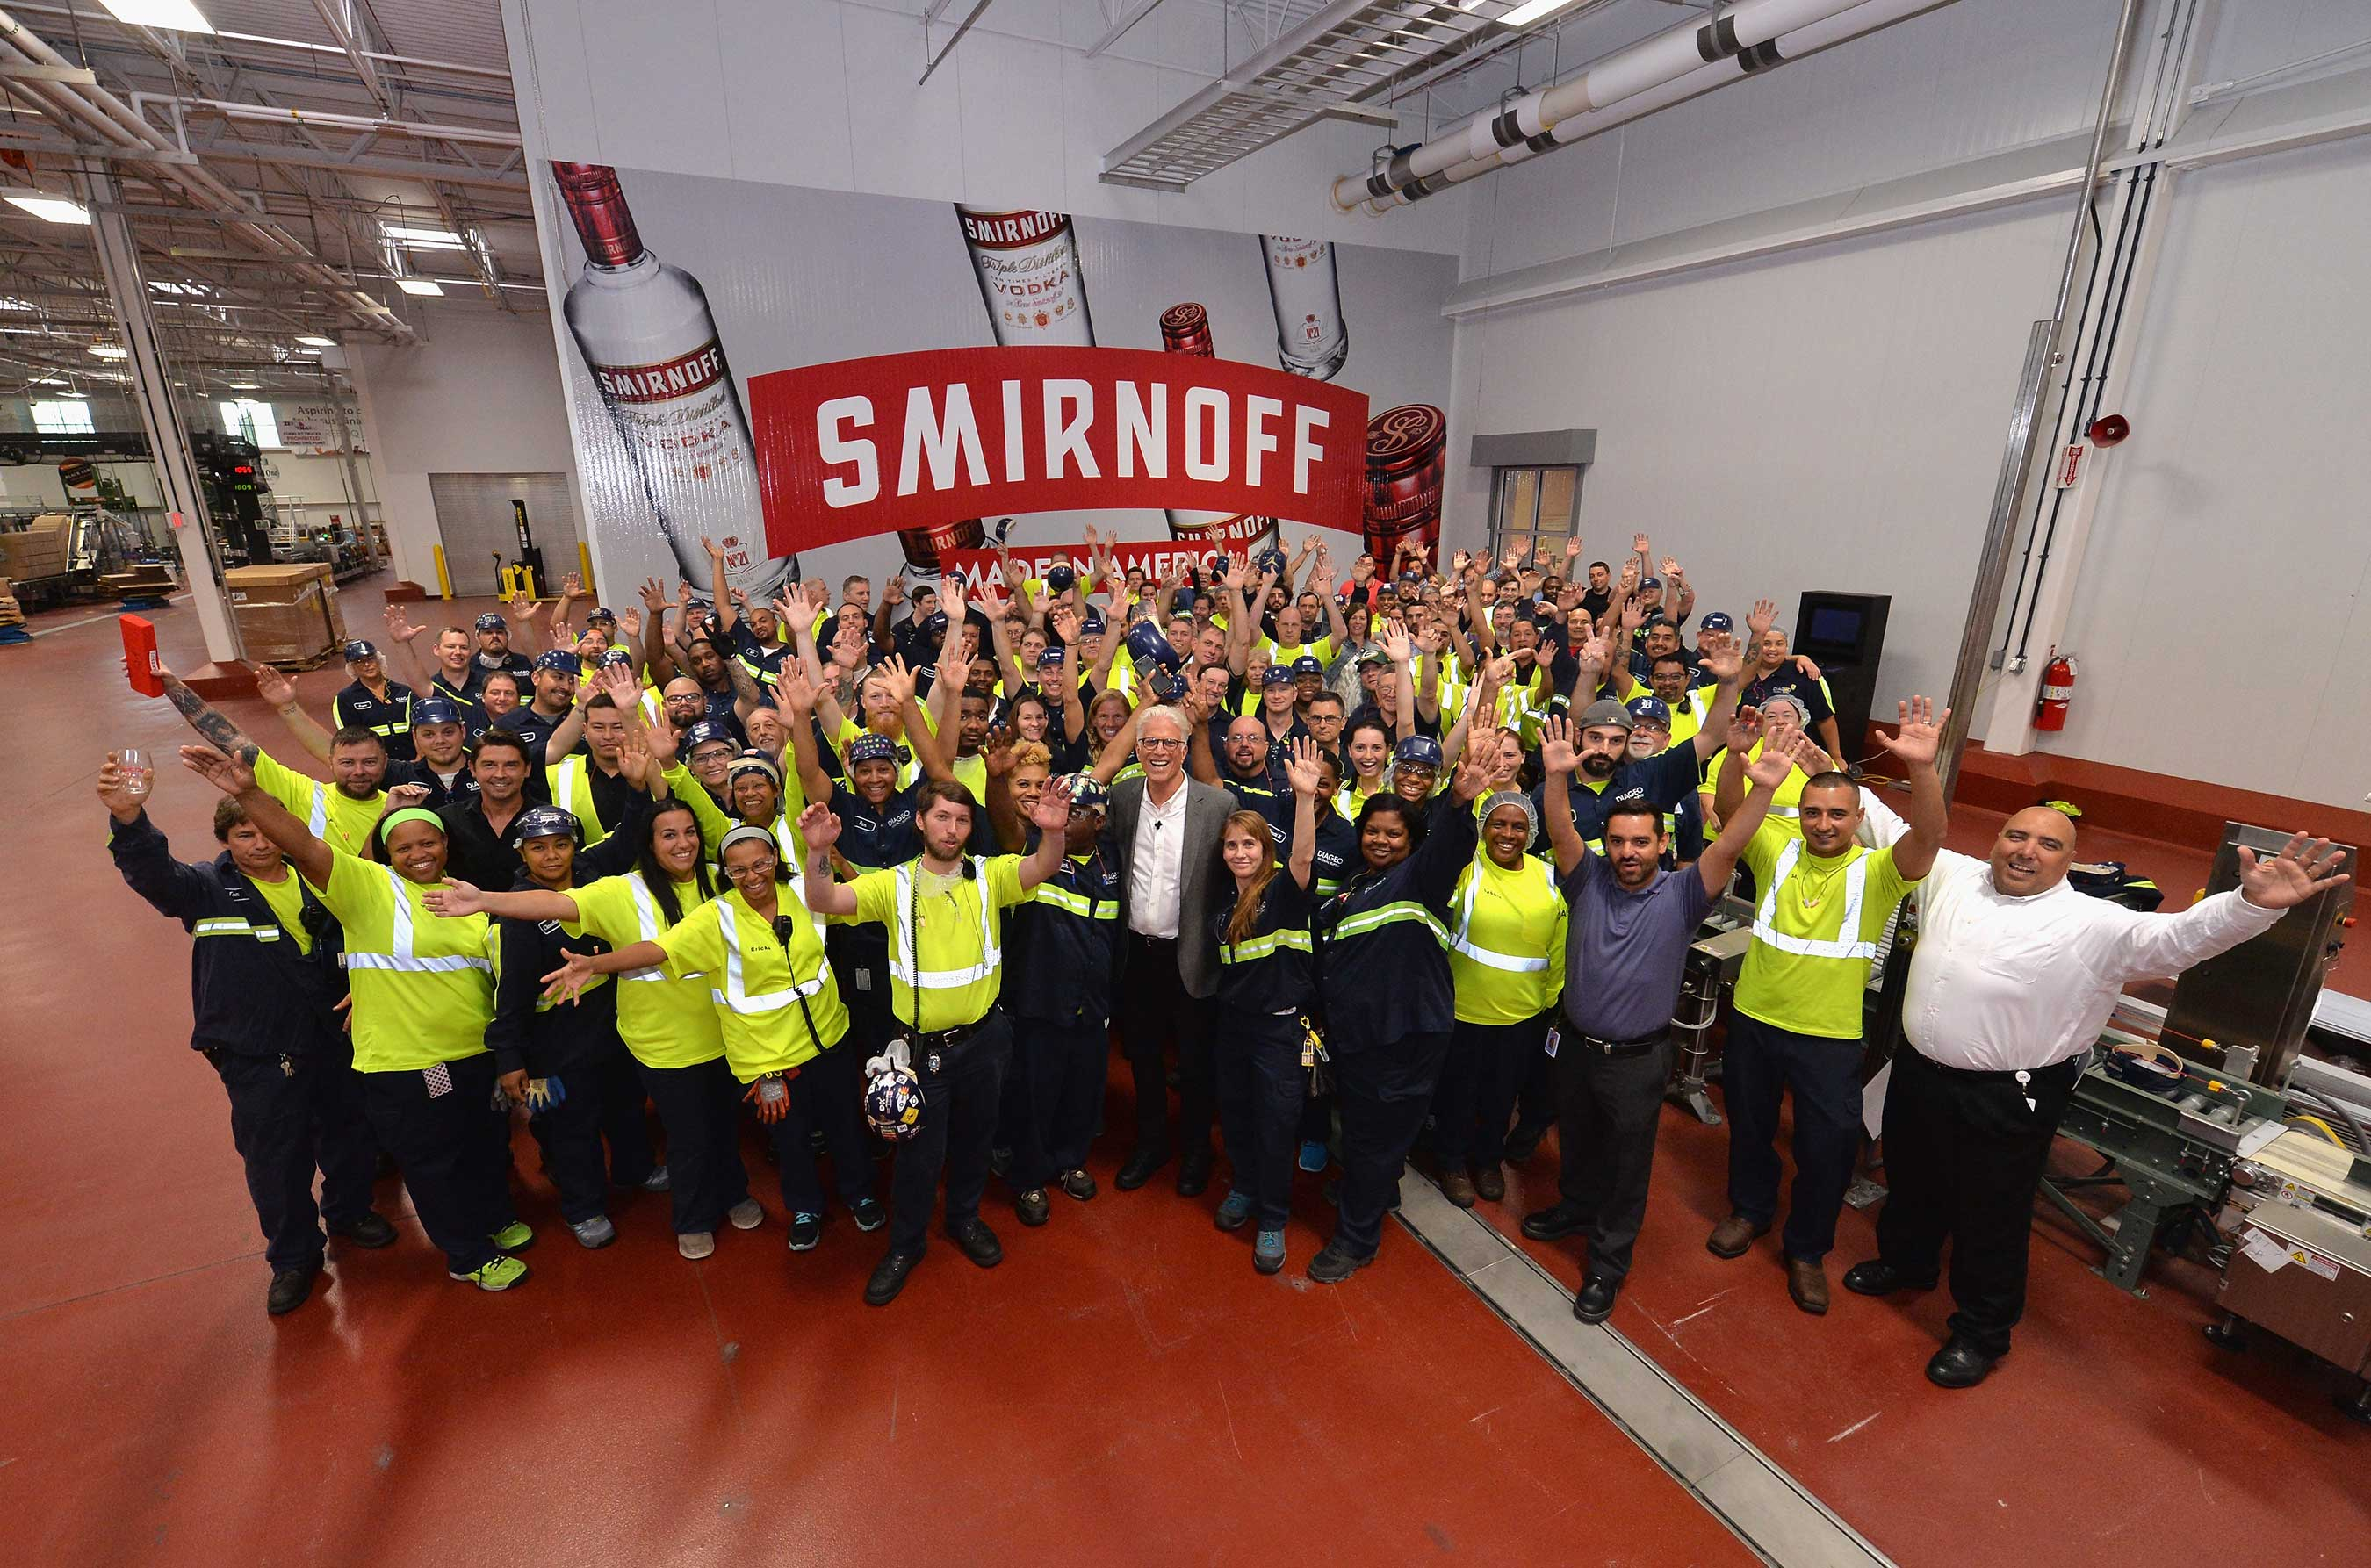 Ted Danson Visits Smirnoff(tm) Vodka Facility In Plainfield, Ill. To Experience How The Brand Is Made In America photo